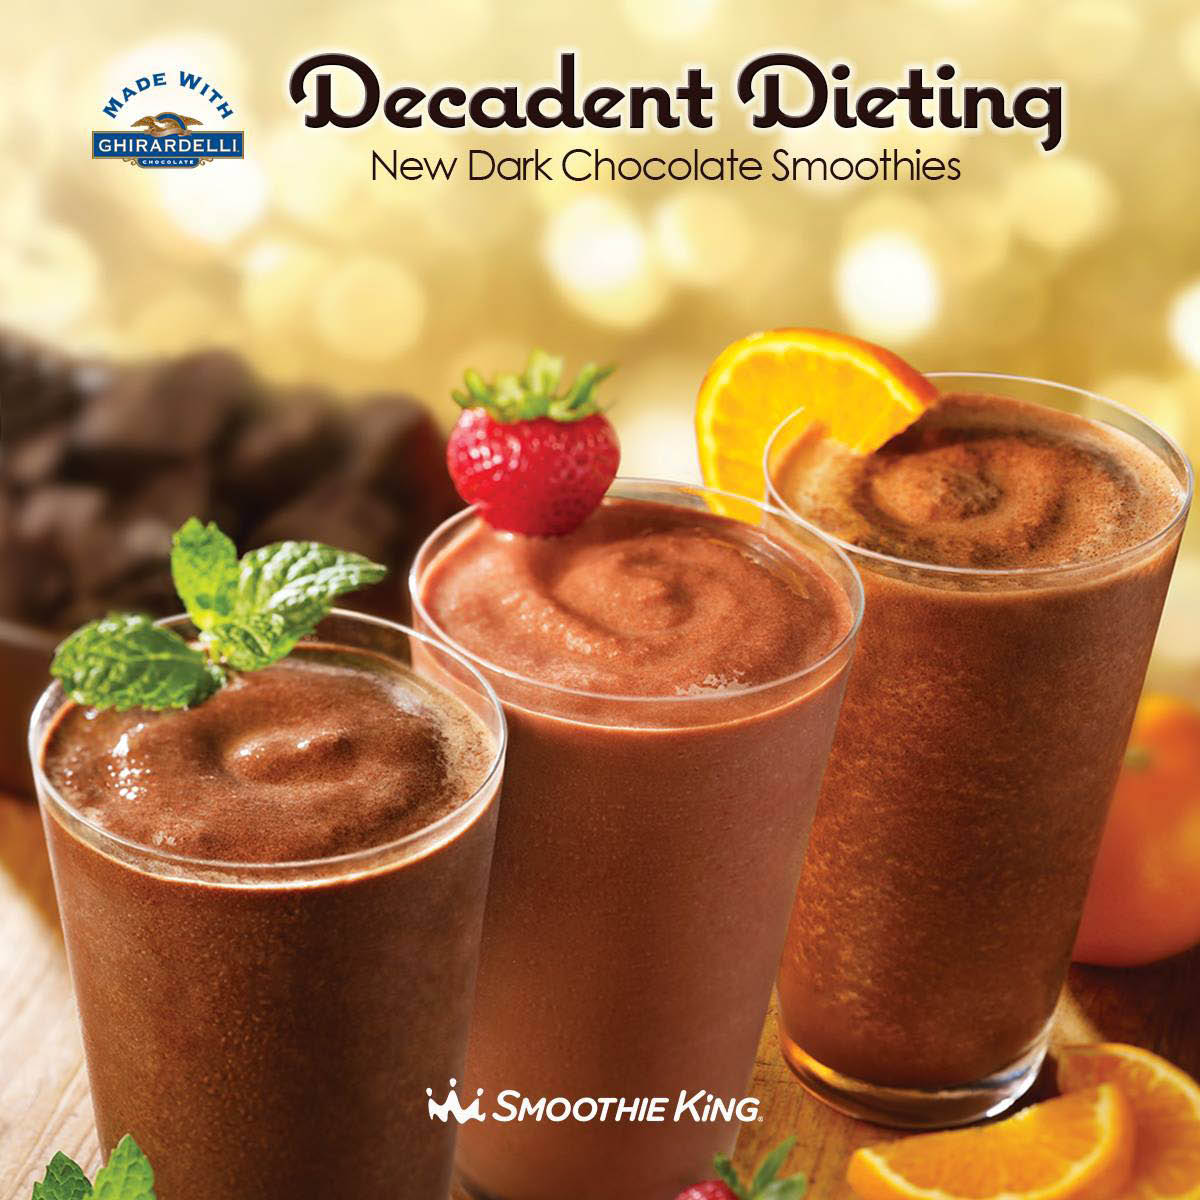 Smoothie king dark chocolate smoothies, Decadent Dieting